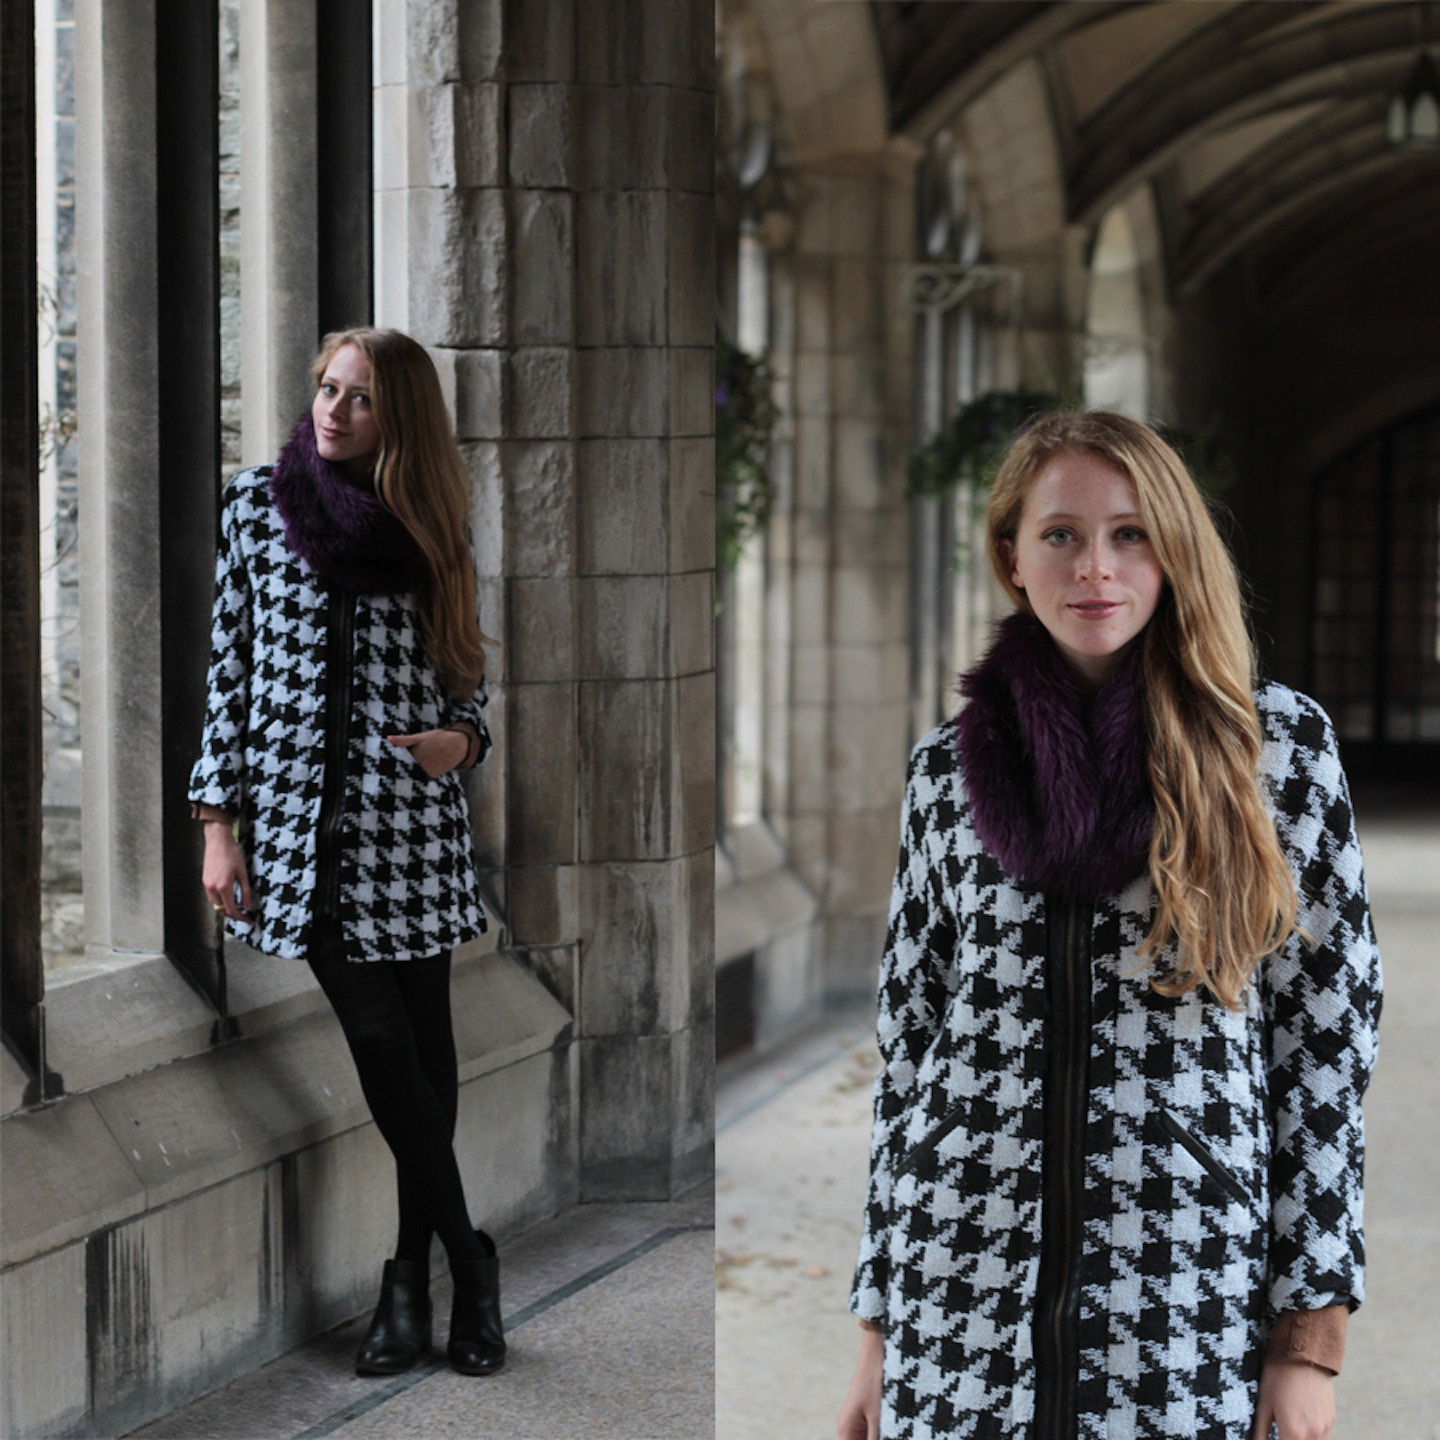 Houndstooth winter coat and purple faux fur stole